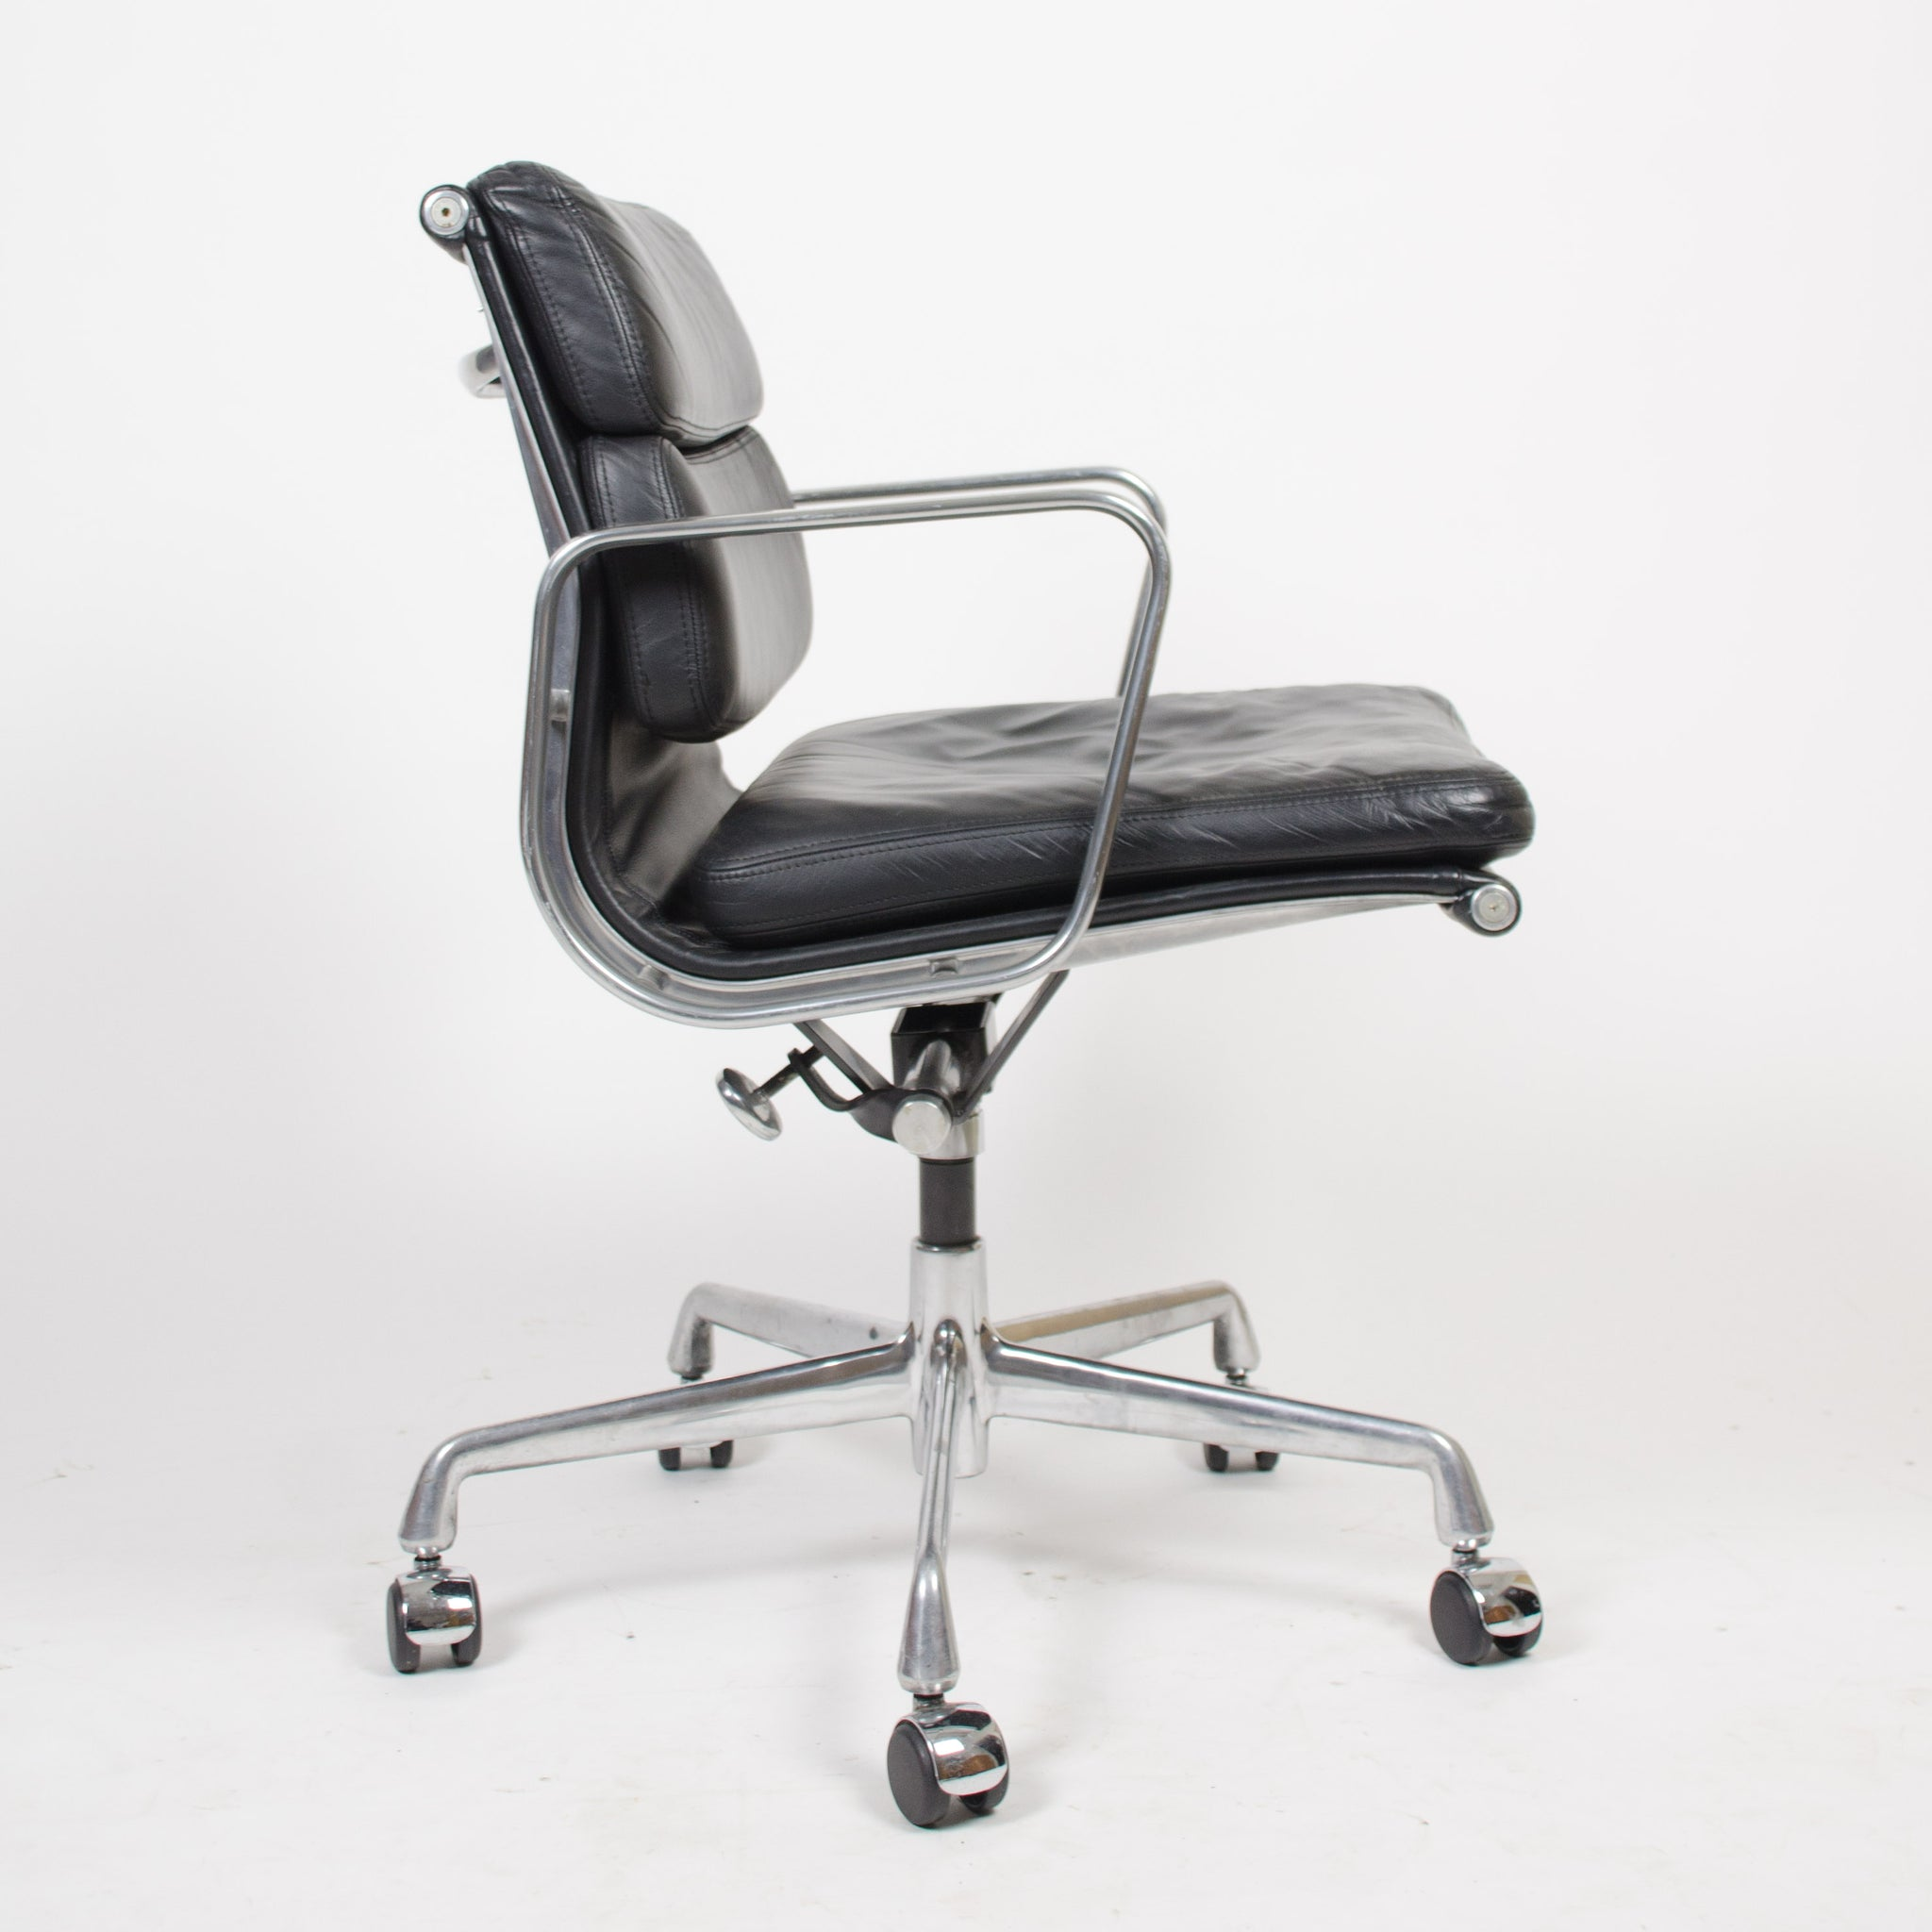 SOLD Eames Herman Miller Soft Pad Aluminum Group Chair Black Leather 22 Available